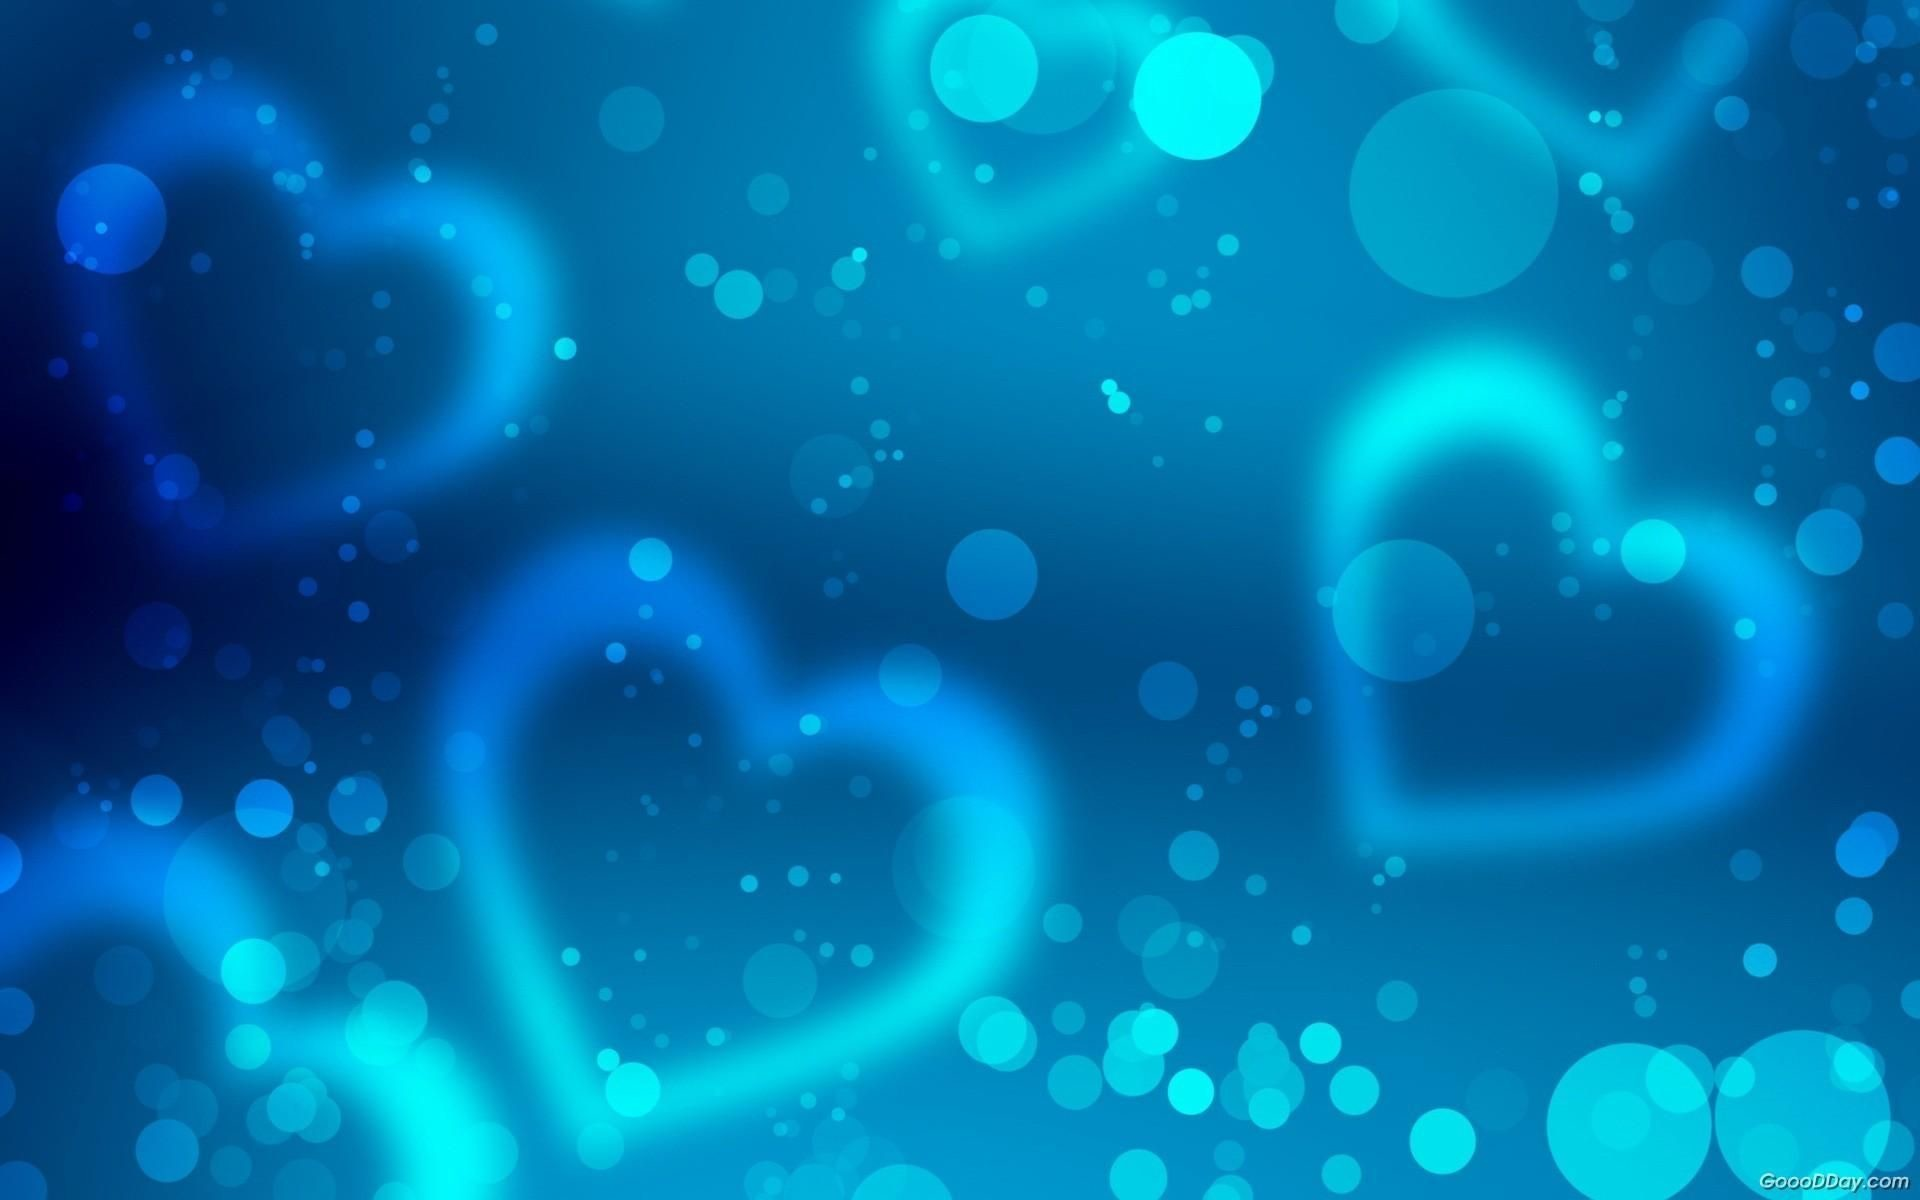 Cute Blue Heart Backgrounds 12494 Full Hd Wallpaper Desktop Res .